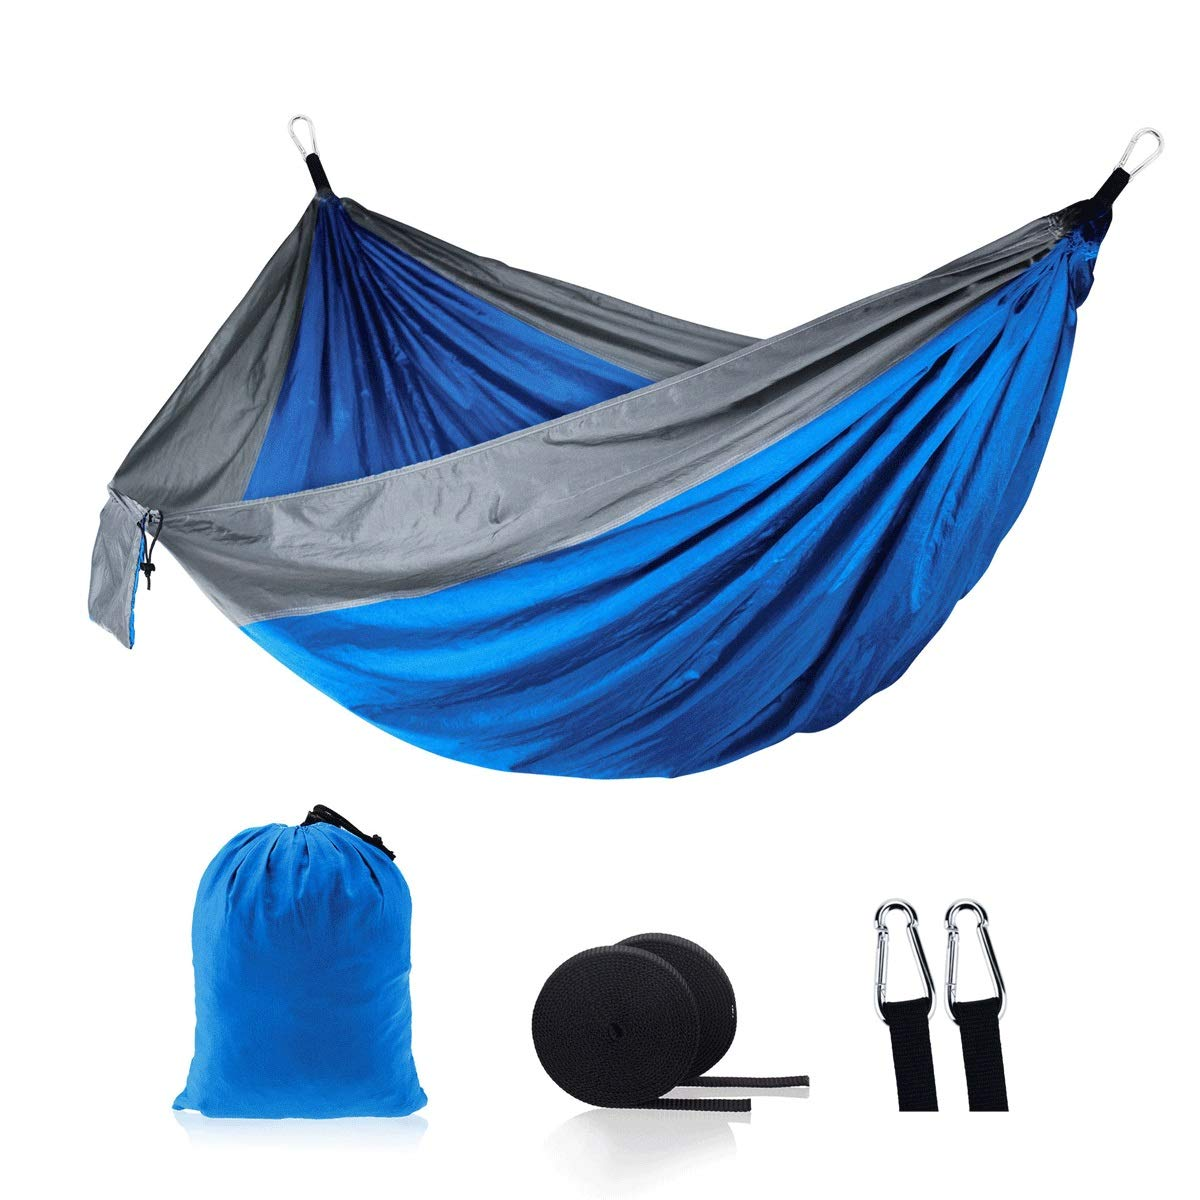 Portable Double Hammock, Lightweight Nylon Portable Hammock, Outdoor Camping Swing Portable Mosquito Hammock, 270140cm for Outdoor Camping/Grilling (Color : Blue) by SXHHH